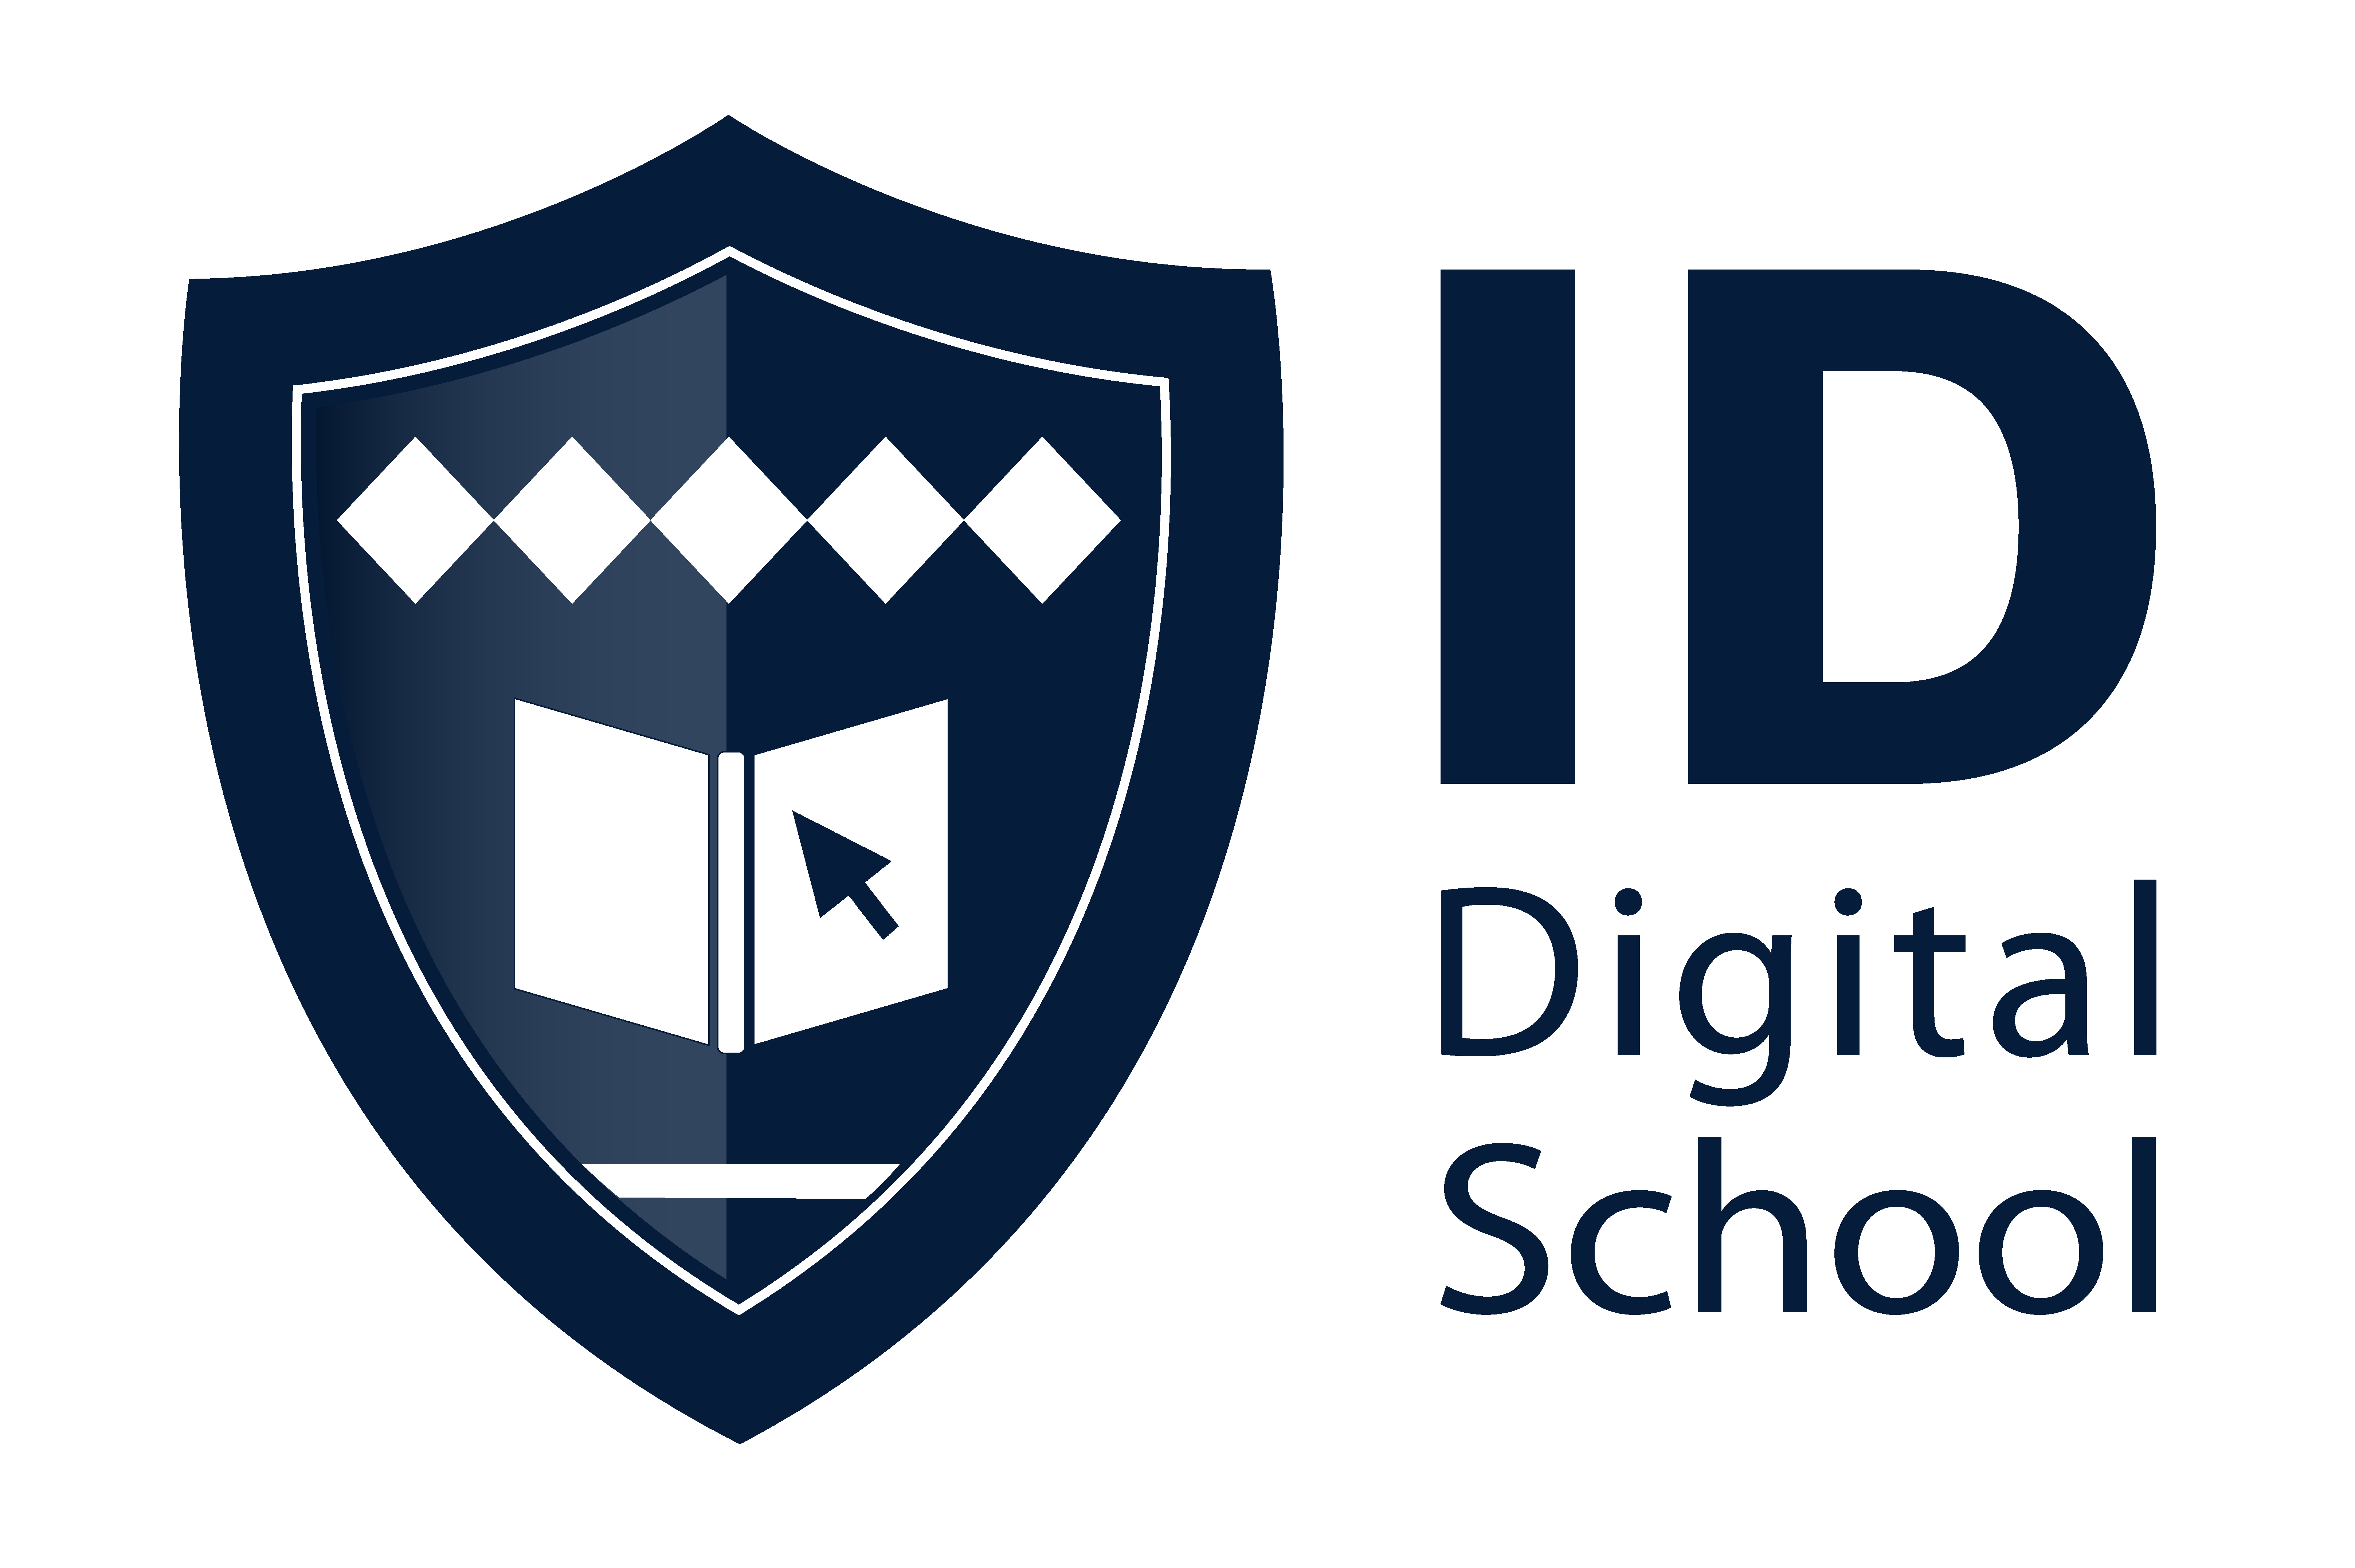 logo ID Digital School